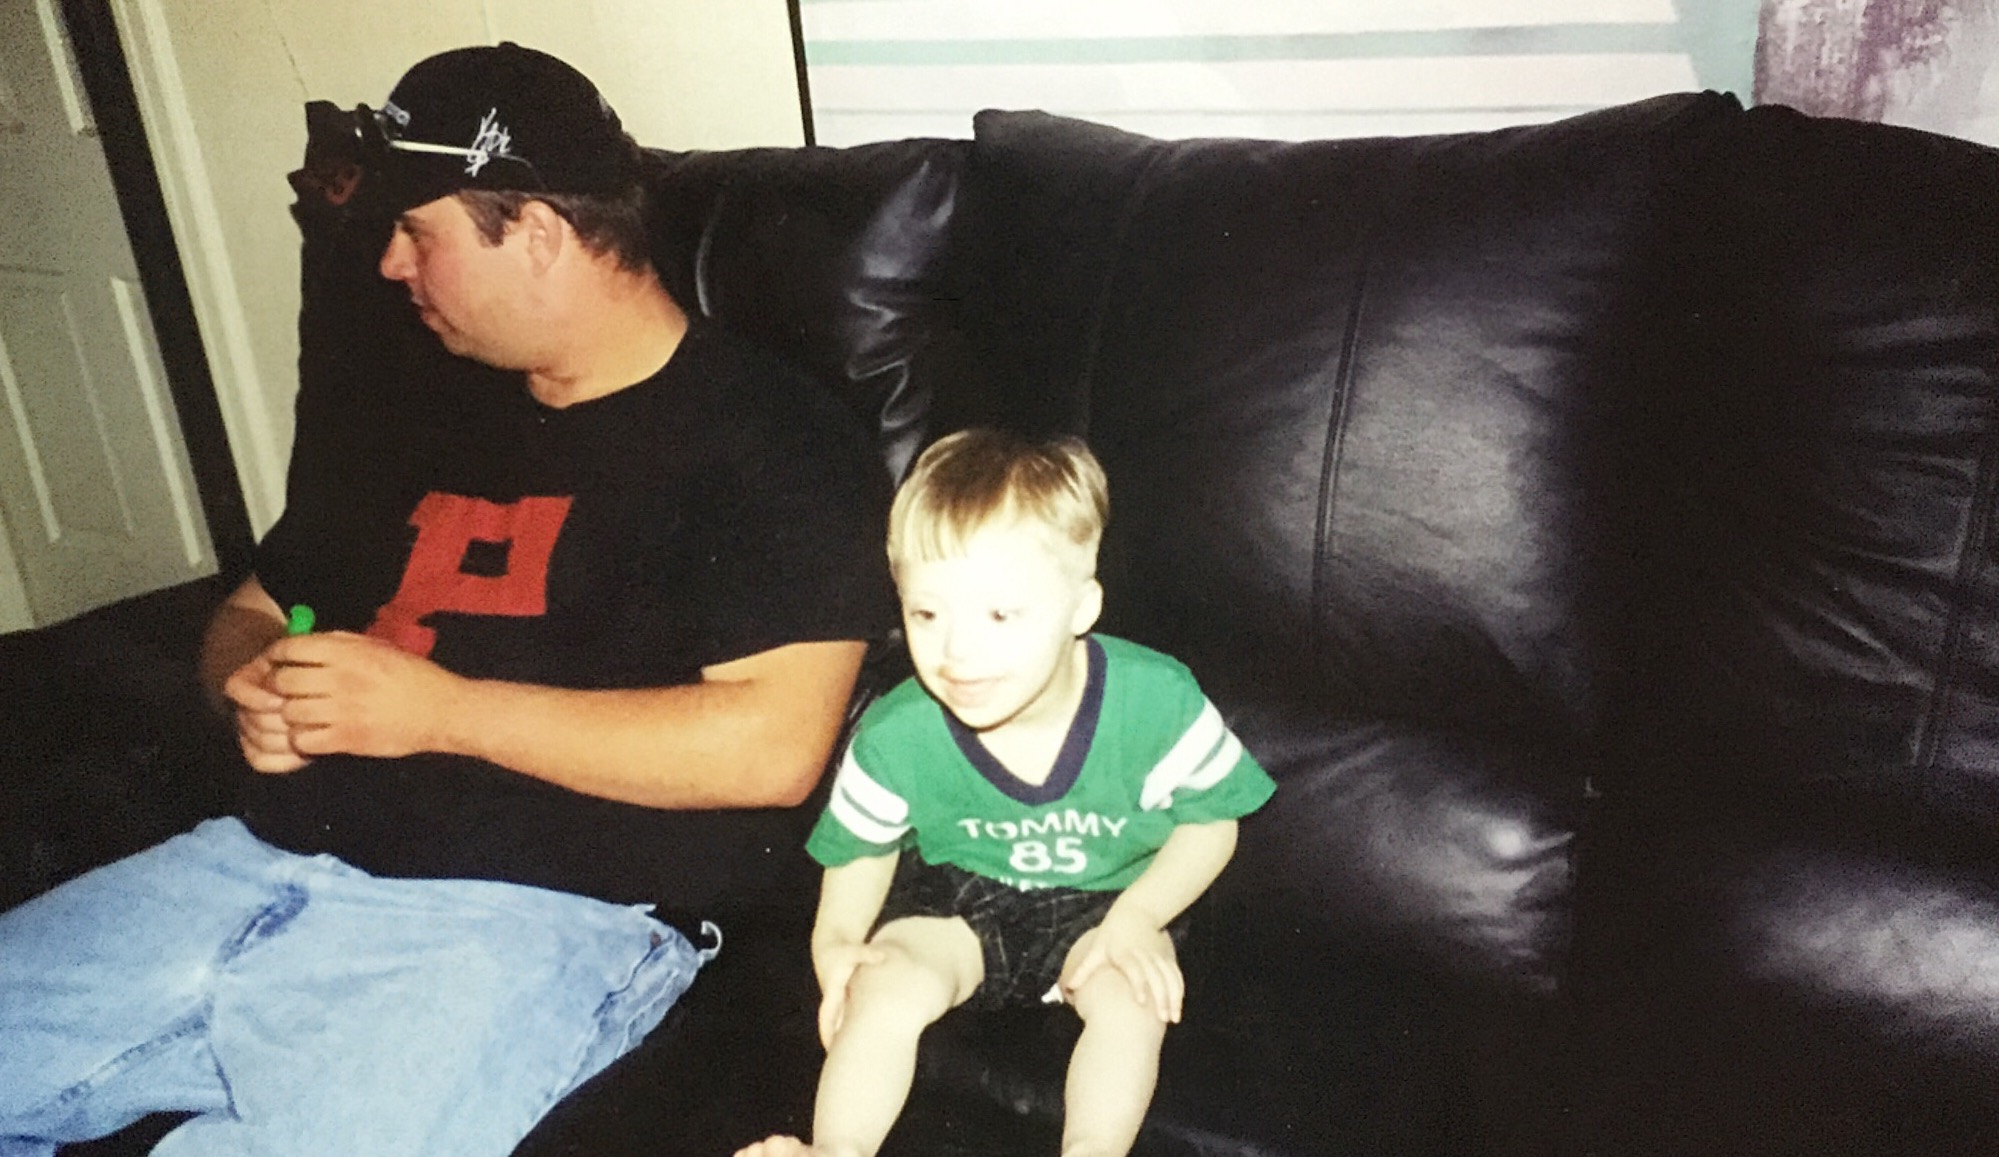 Me and my late brother Jarrett. Miss you buddy.